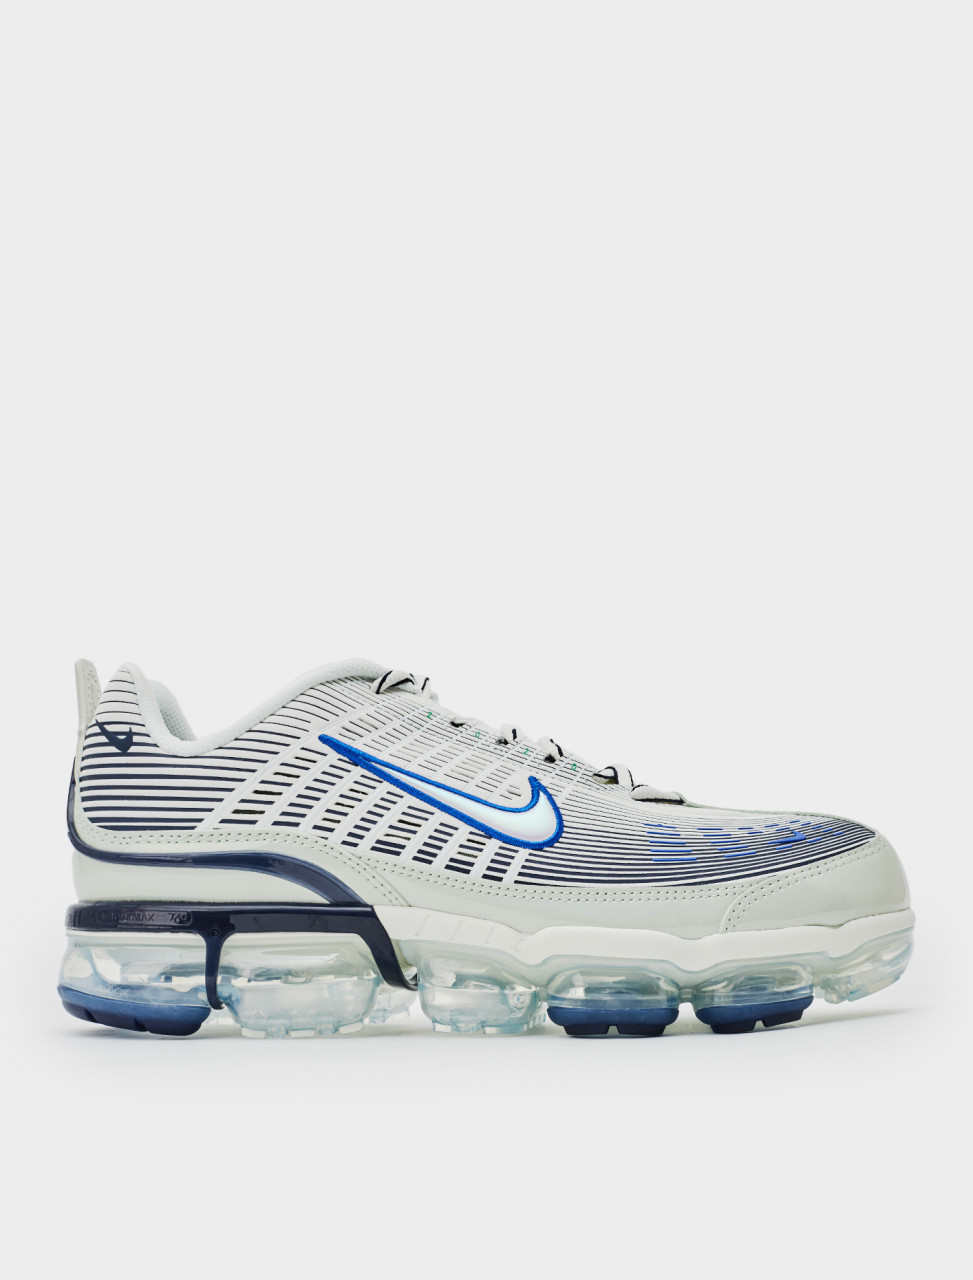 Side view of Nike Air Vapormax 360 Sneaker in Spruce Aura Racer Blue-Pistachio Frost